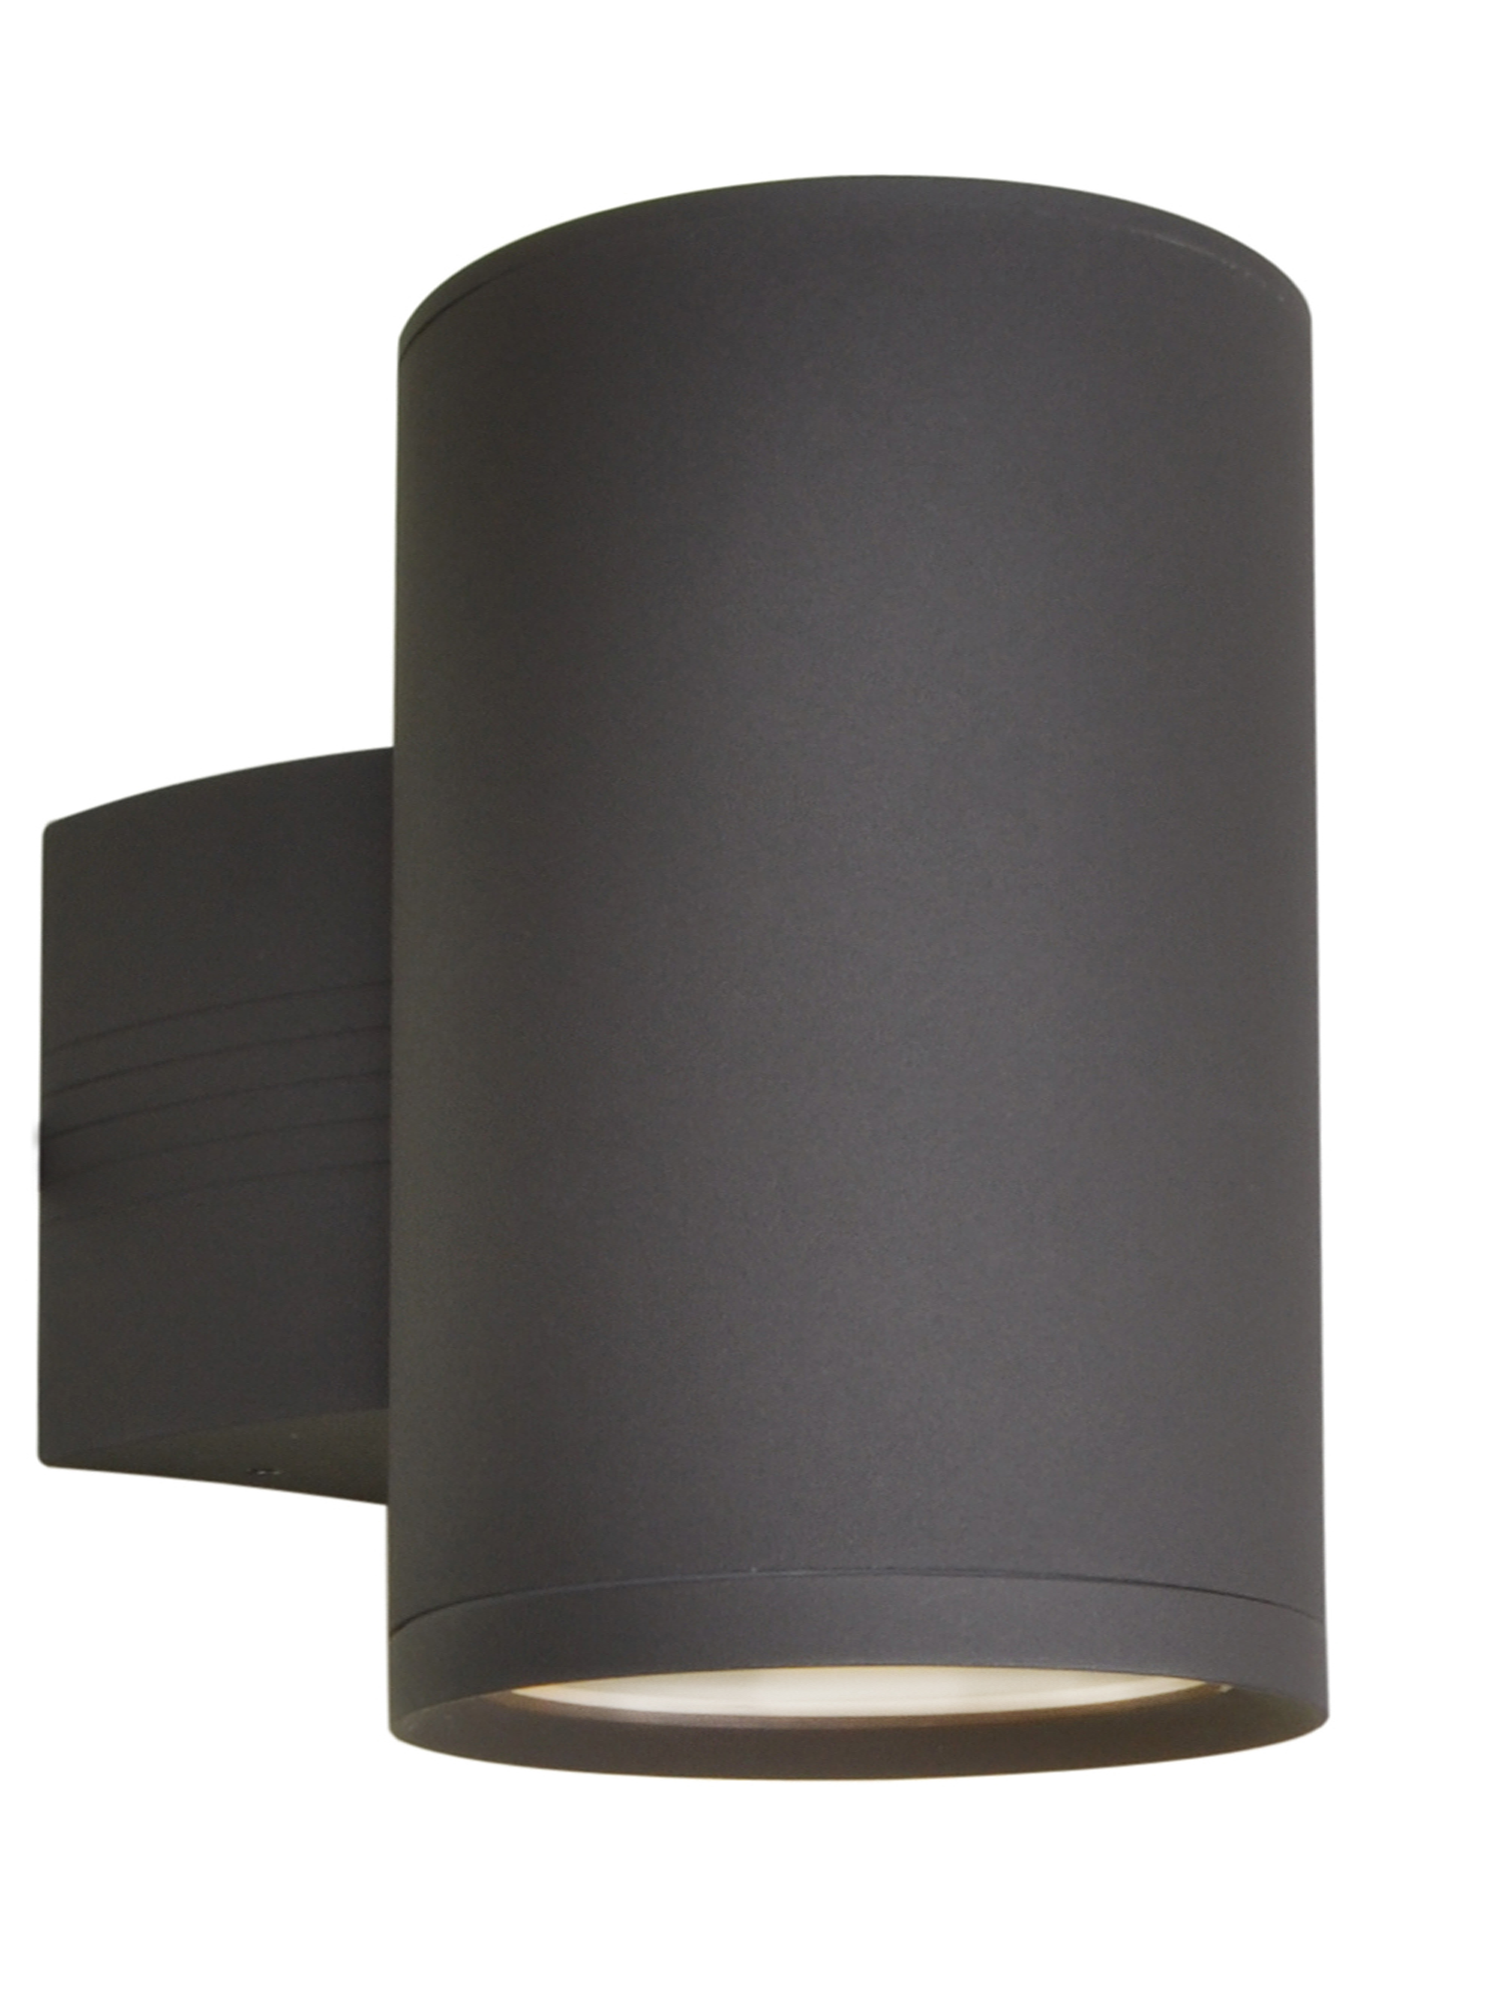 Lightray Plain Outdoor Wall Light Download Image